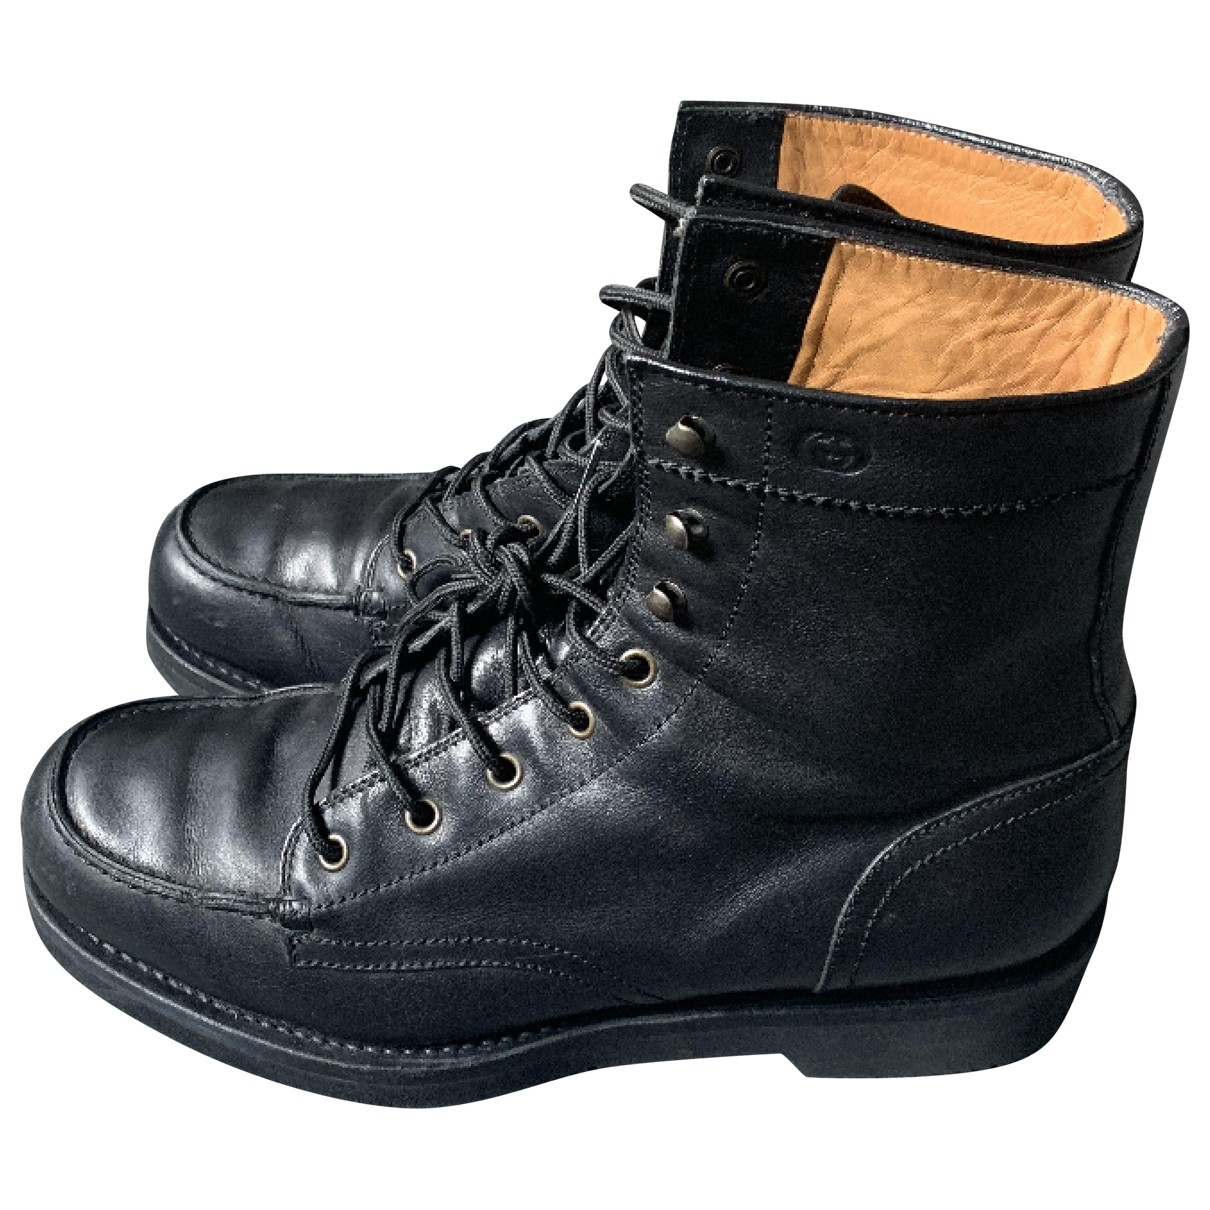 Gucci \N Black Leather Boots for Men 42.5 EU